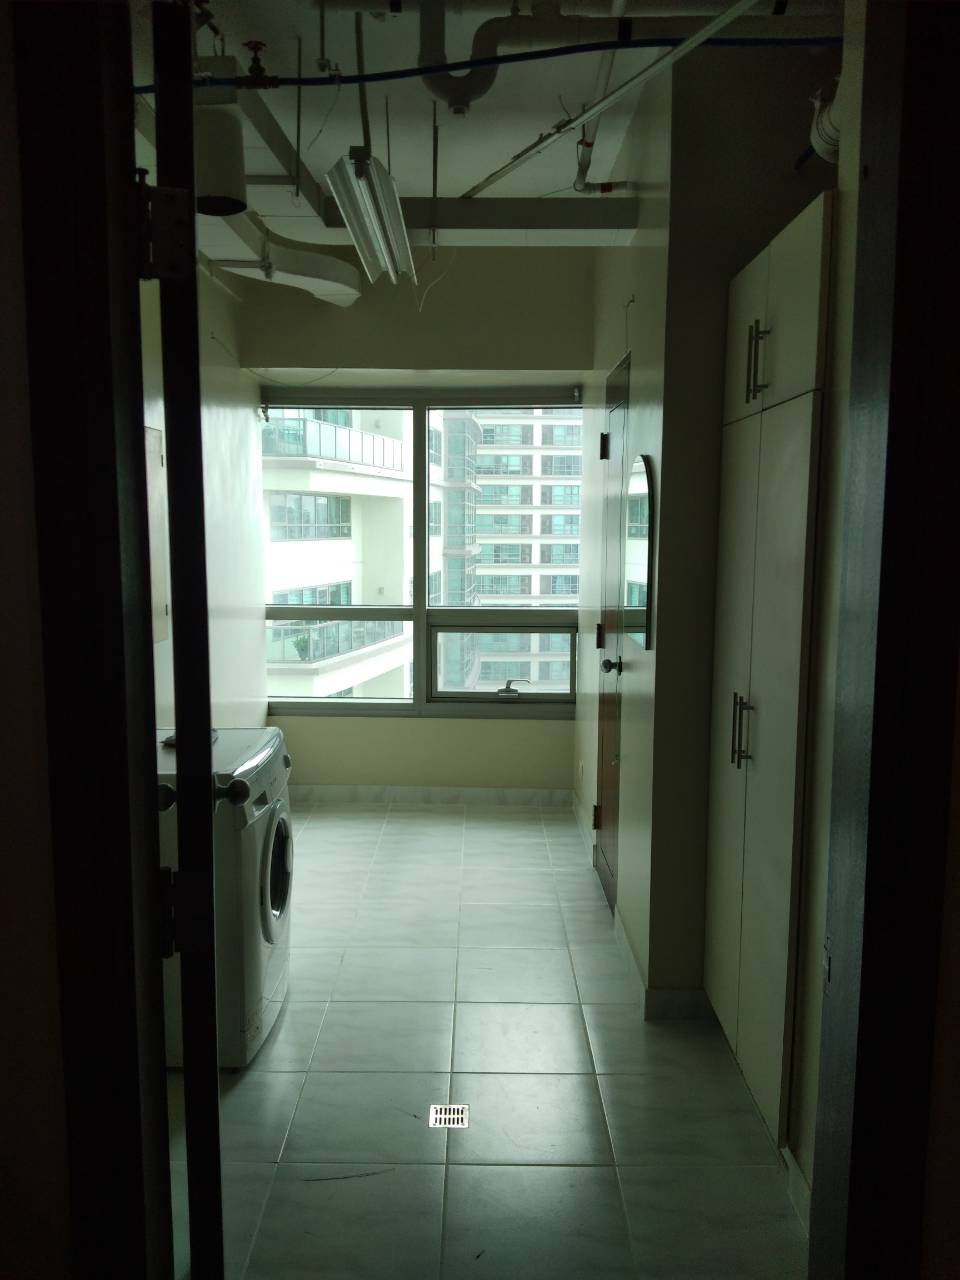 2 Bedrooms Condo For Rent, The Residences At Greenbelt Washing Area Entrance